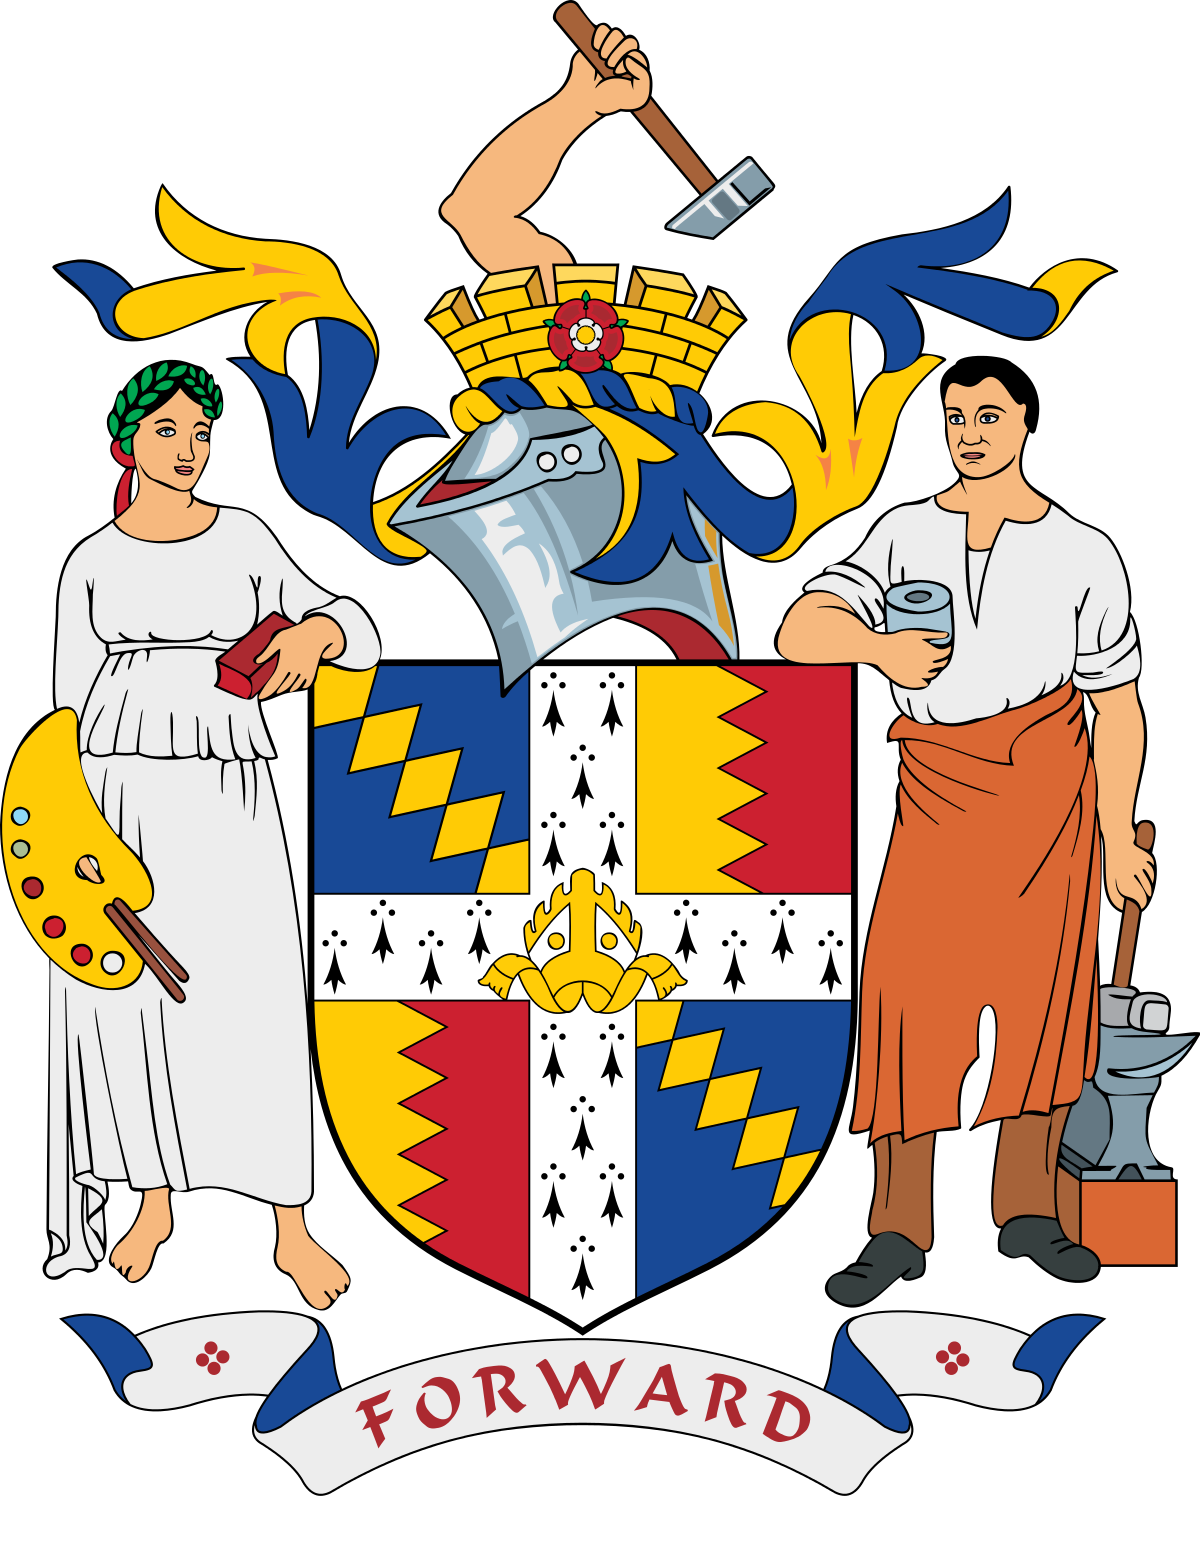 Birmingham city council wikipedia. Intolerable acts clipart poll tax